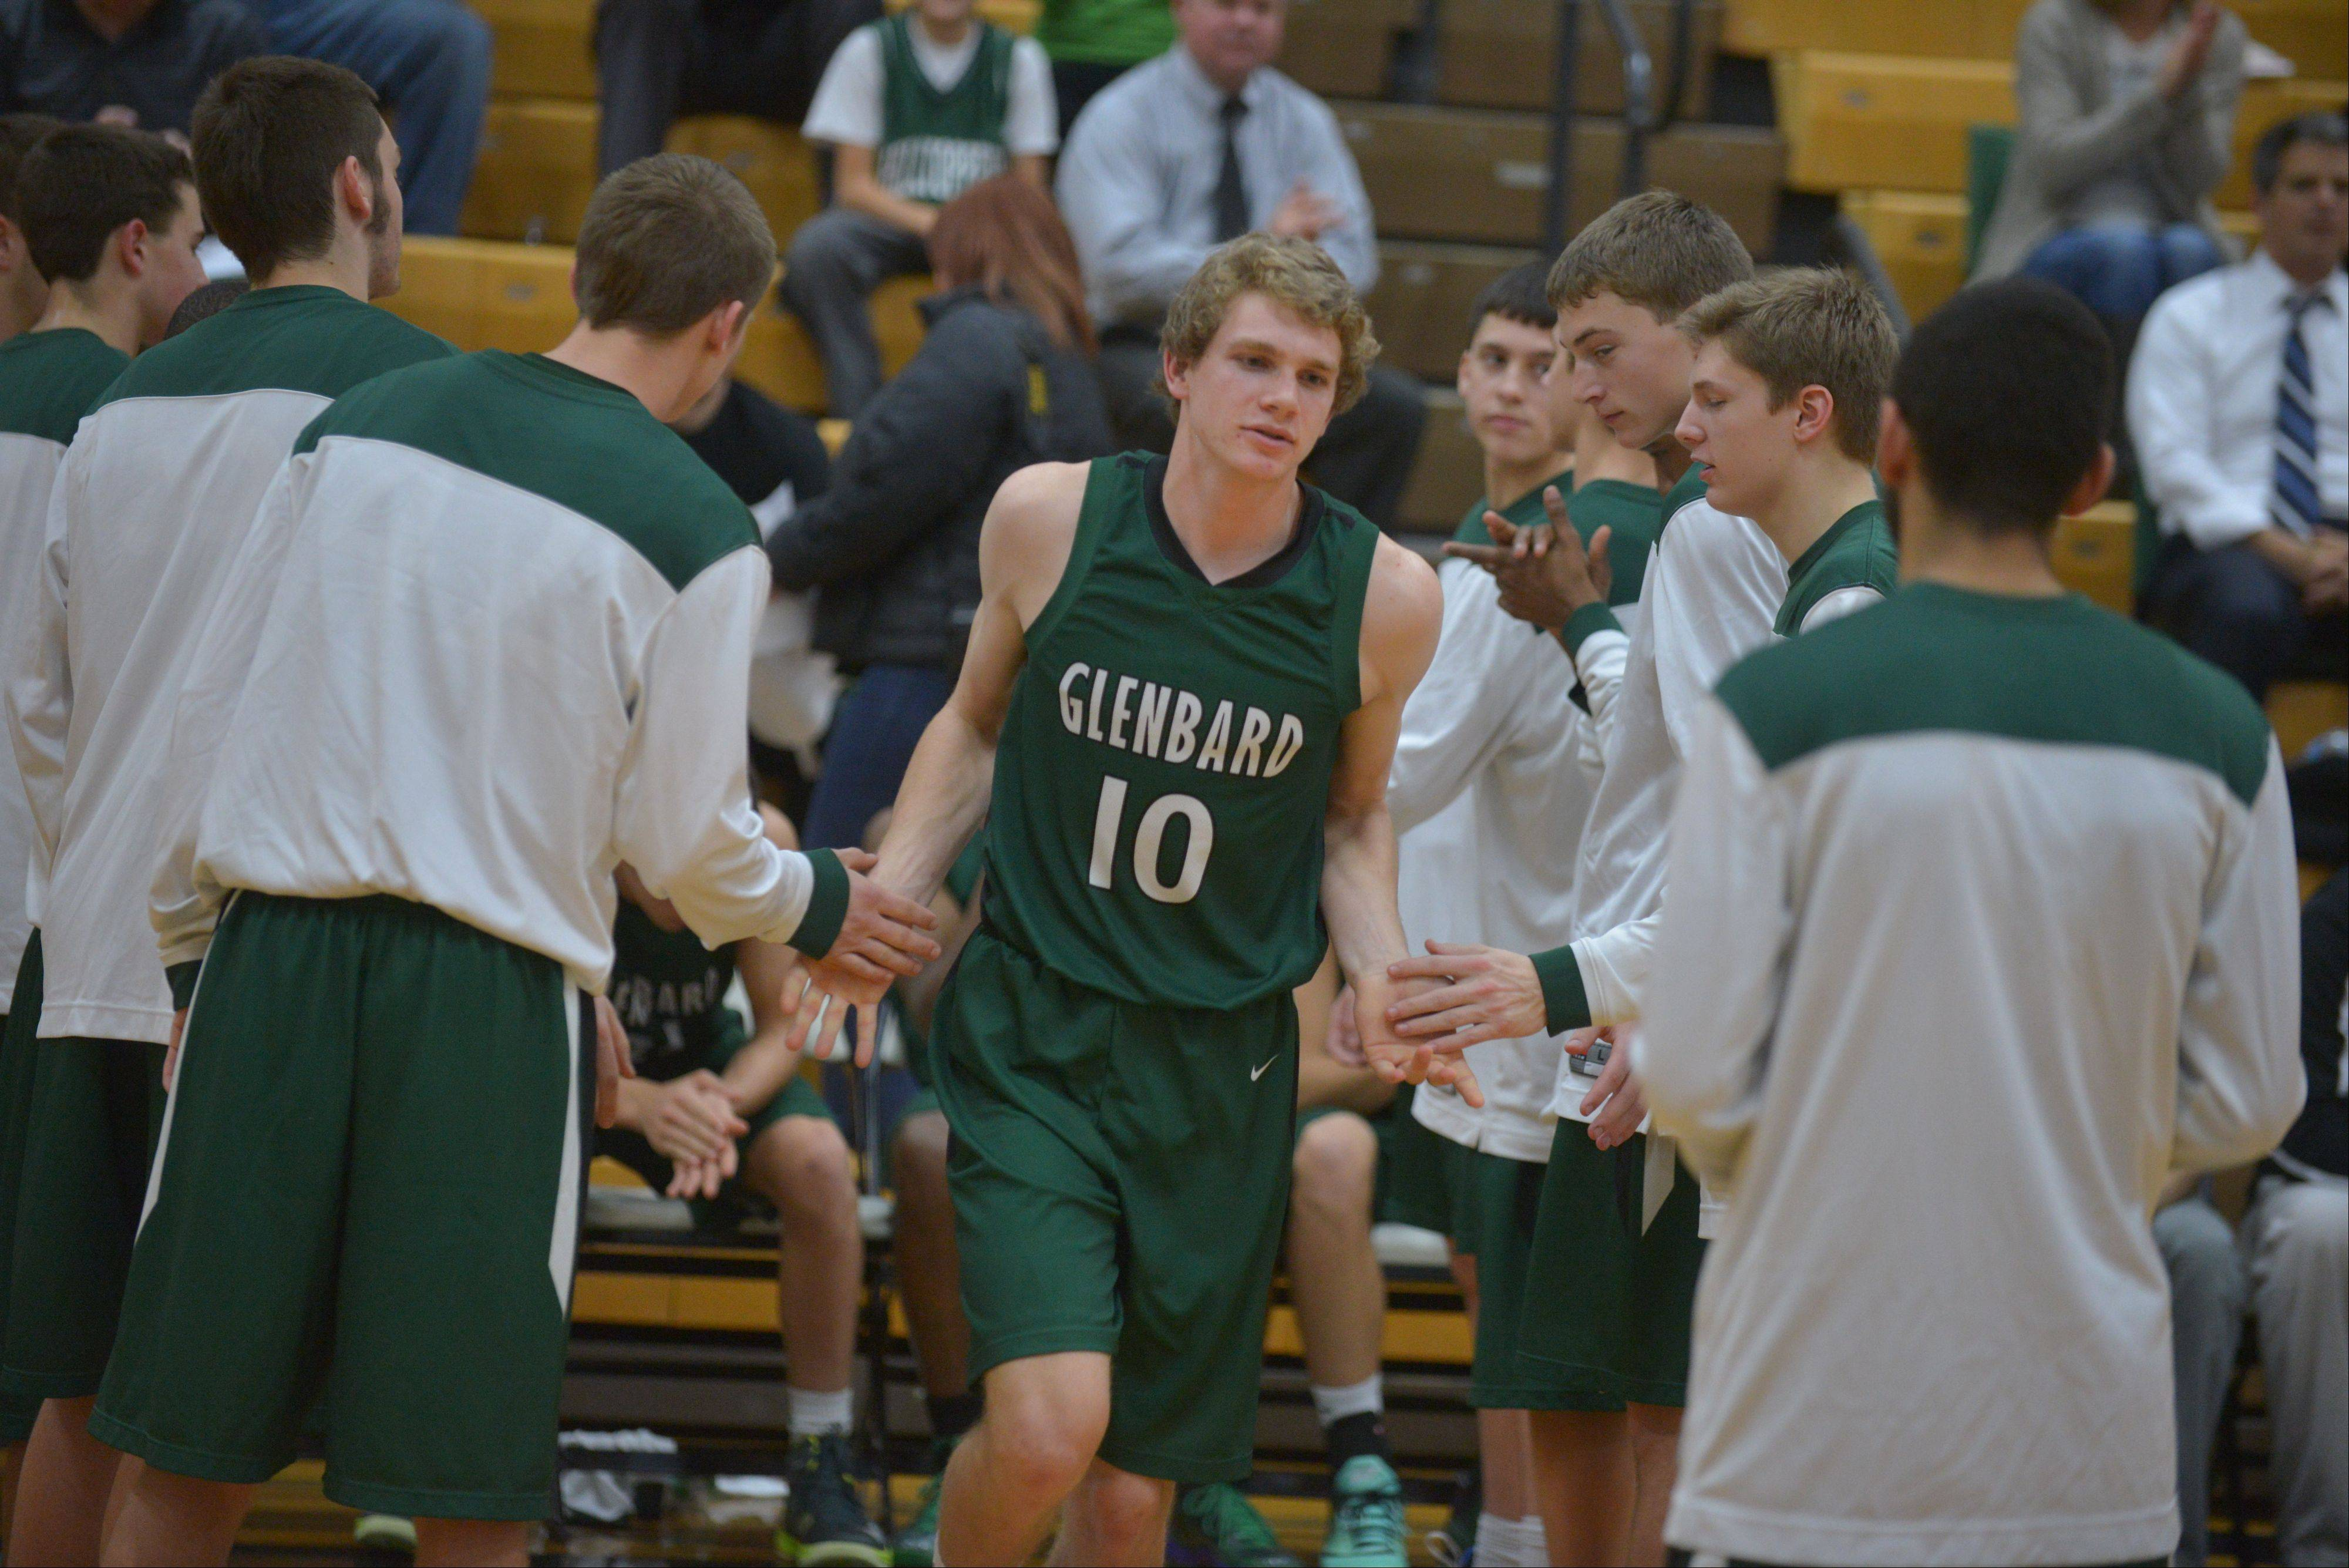 Glenbard West at Hinsdale South boys basketball